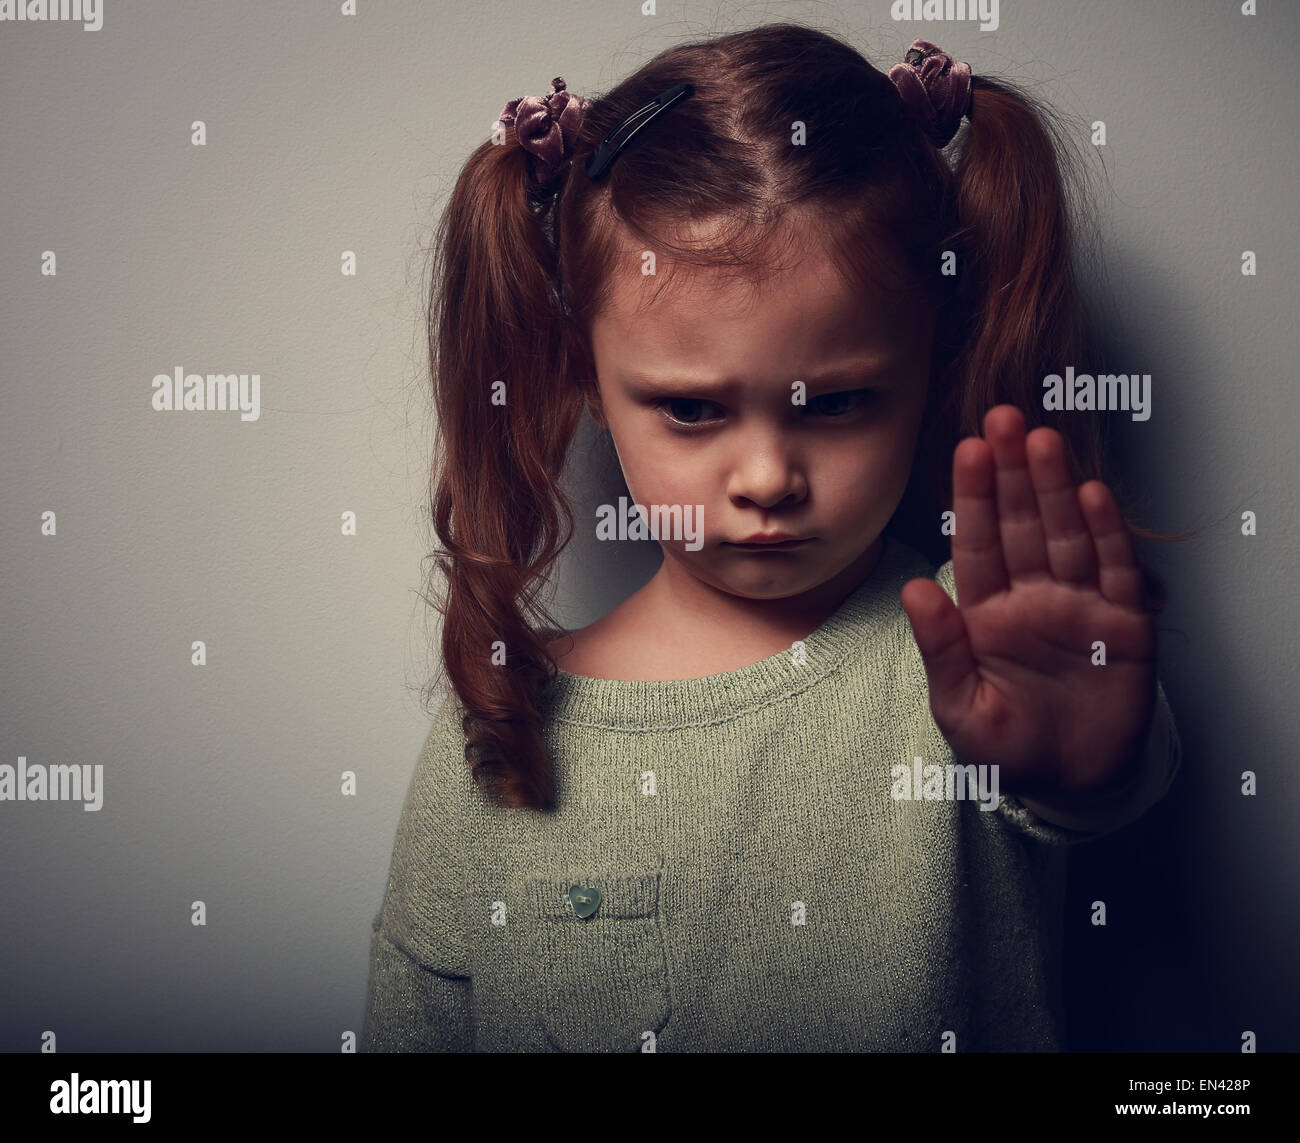 Kid girl showing hand signaling to stop violence and pain and looking down on dark background. Closeup color portrait - Stock Image